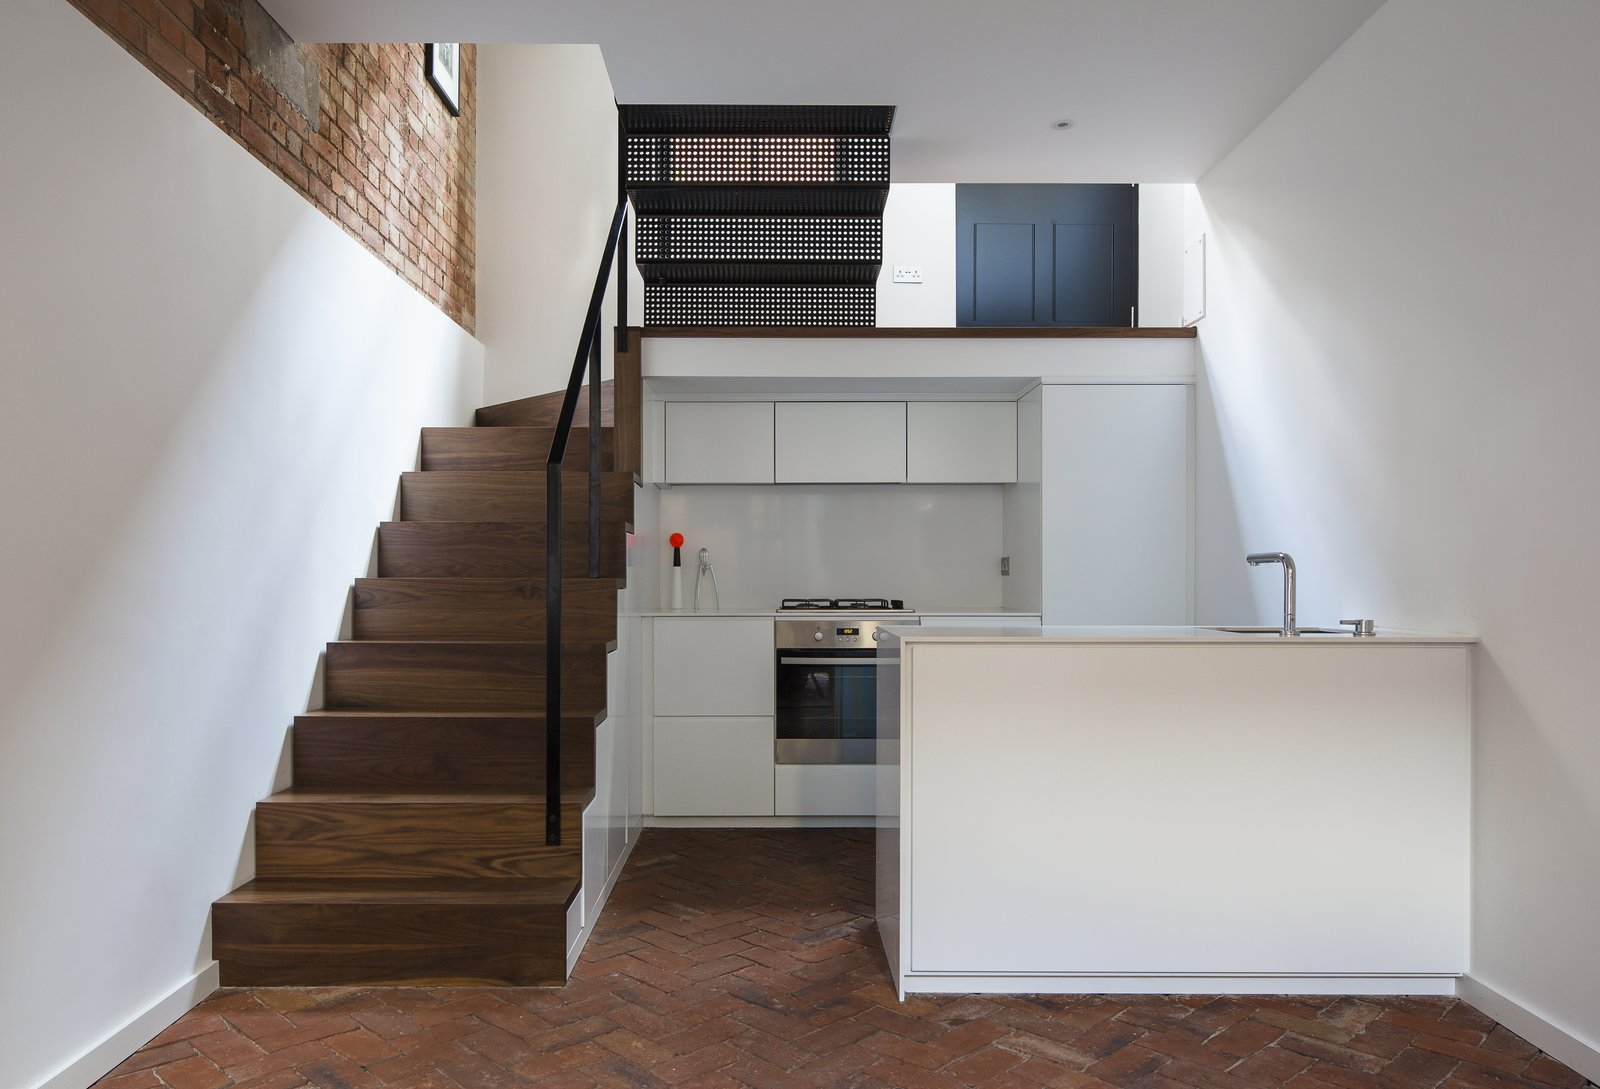 The kitchen is situated in a sunken basement, underneath the staircase's walnuts steps. The same joiner who built the house's timber elements built the white cabinetry which are finished in a 40% gloss lacquer. Silestone countertops and integrated appliances maintain the space's simple lines. Additional storage is fitted under the staircase. Tagged: Staircase, Metal Tread, and Wood Tread.  Photo 11 of 21 in A Spotlight on 10 Traditional Homes with Modern Interiors from Cleverly Stacked Floors Form a Roomy House On a Tight Lot